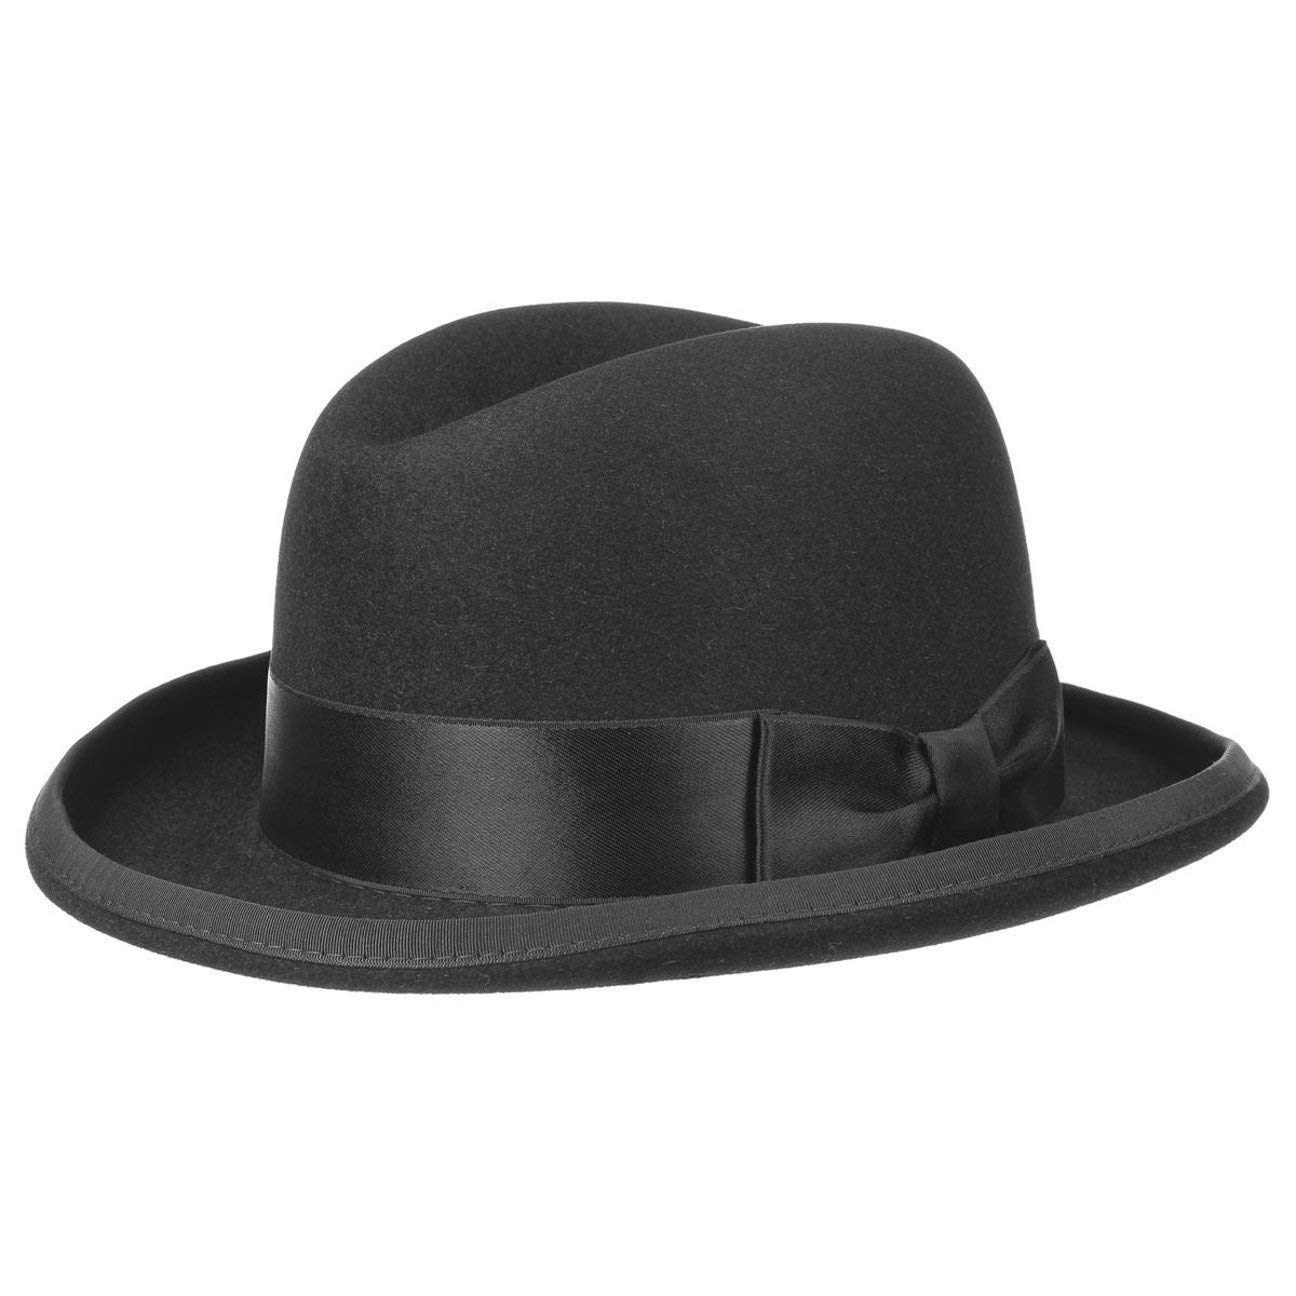 7750936c9 Stetson Saks Homburg Fur Felt Hat men´s: Amazon.co.uk: Clothing